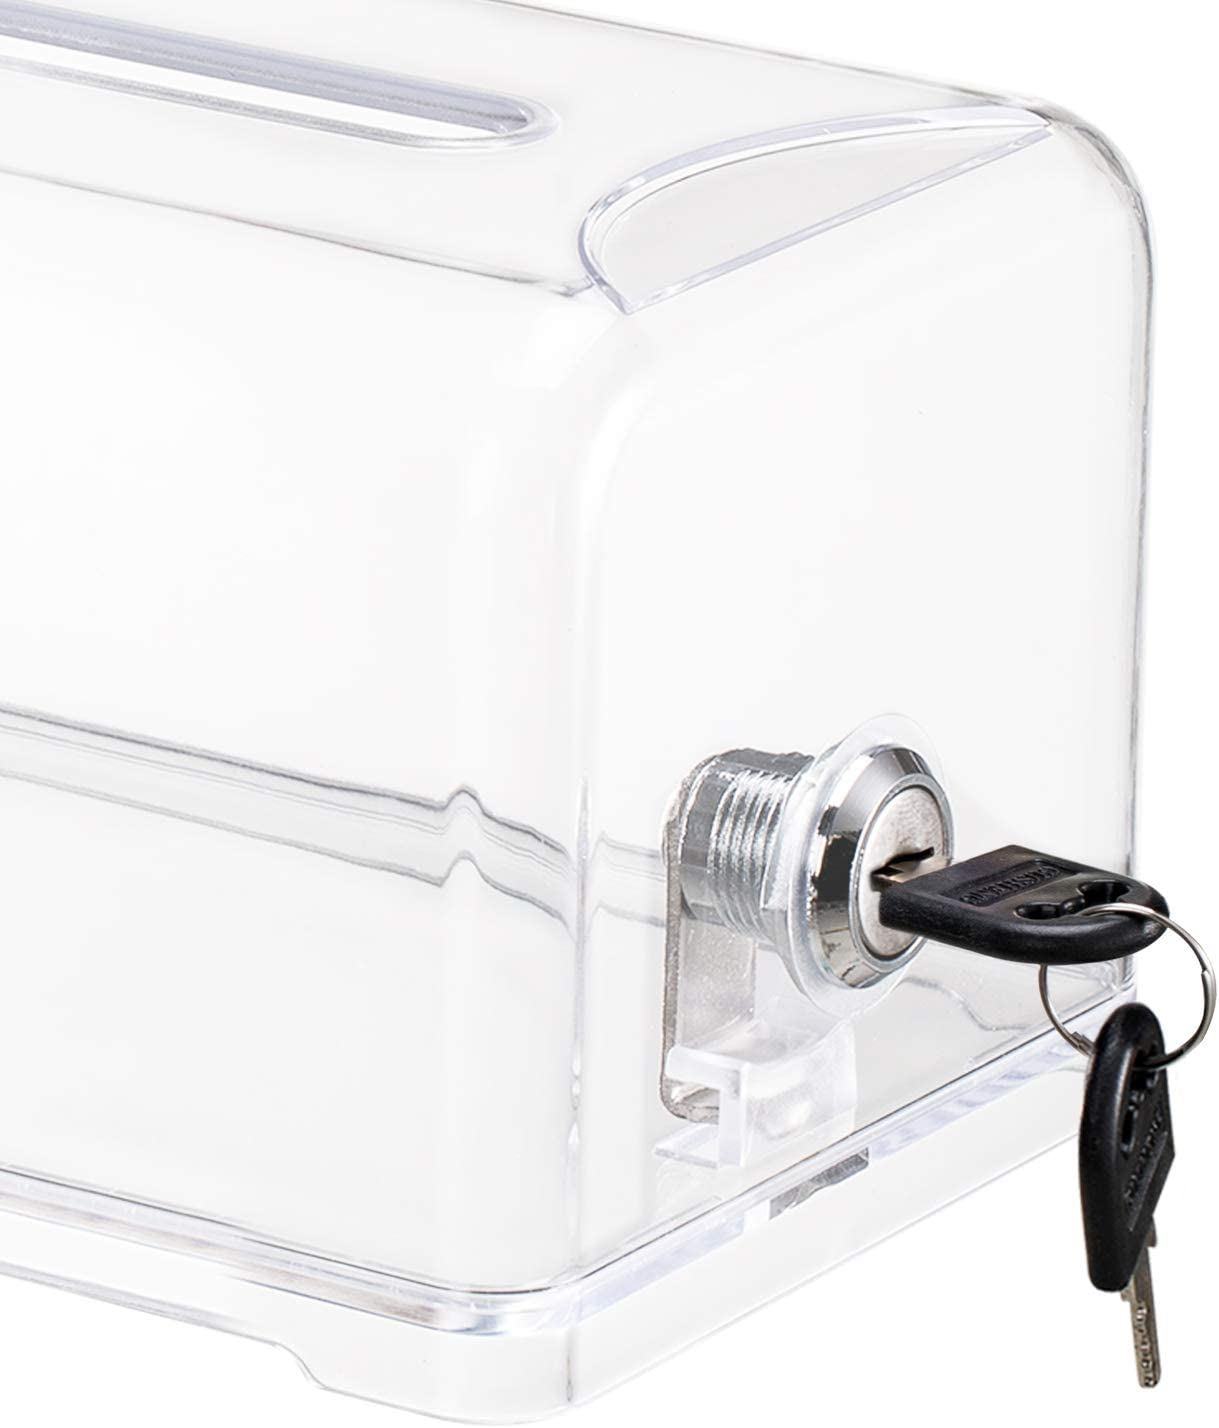 7.5 x 4.5 x 4 Polmart Acrylic Donation Box with Lock Ballot Box Donation Boxes for Fundraising with Lock,Clear Suggestion Box Storage Container for Business Cards